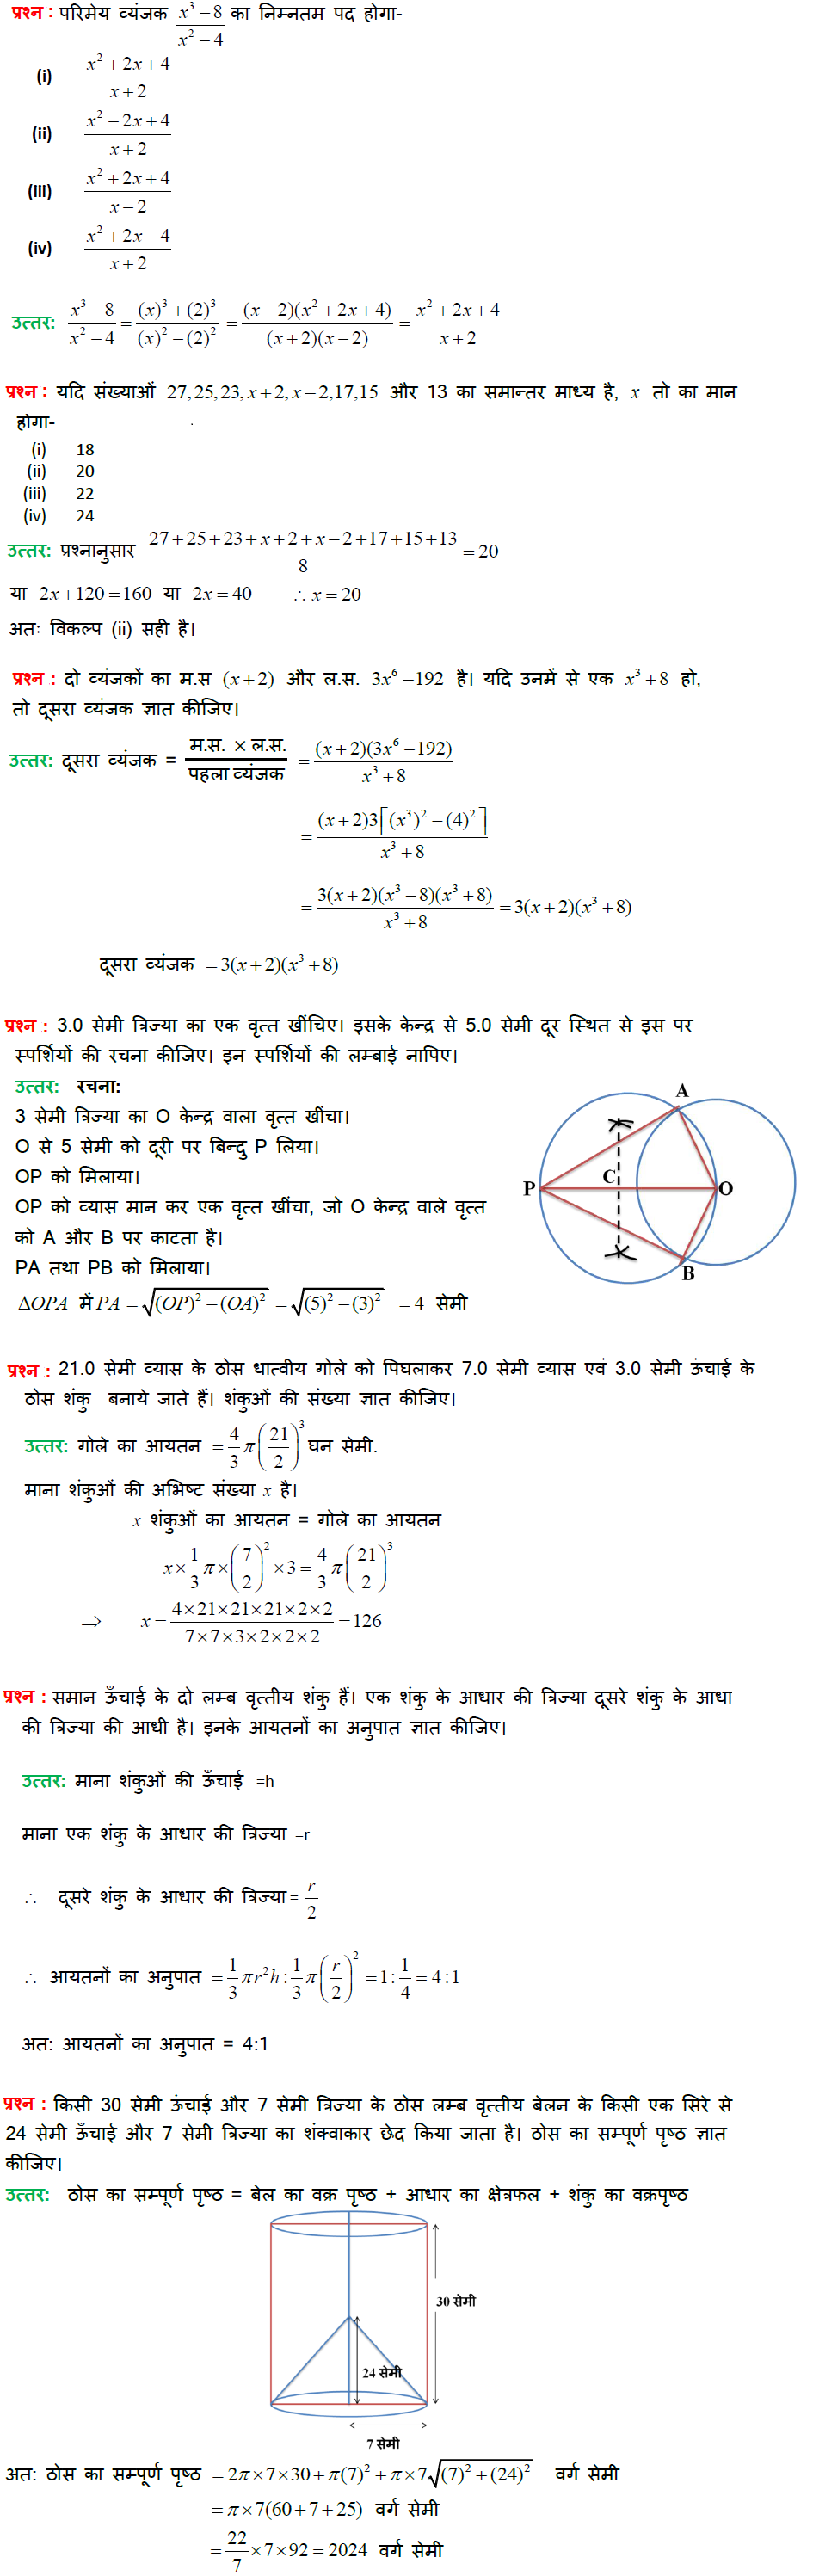 UP Board Class 10 Mathematics Solved Practice Paper Set – 6 | UP Board